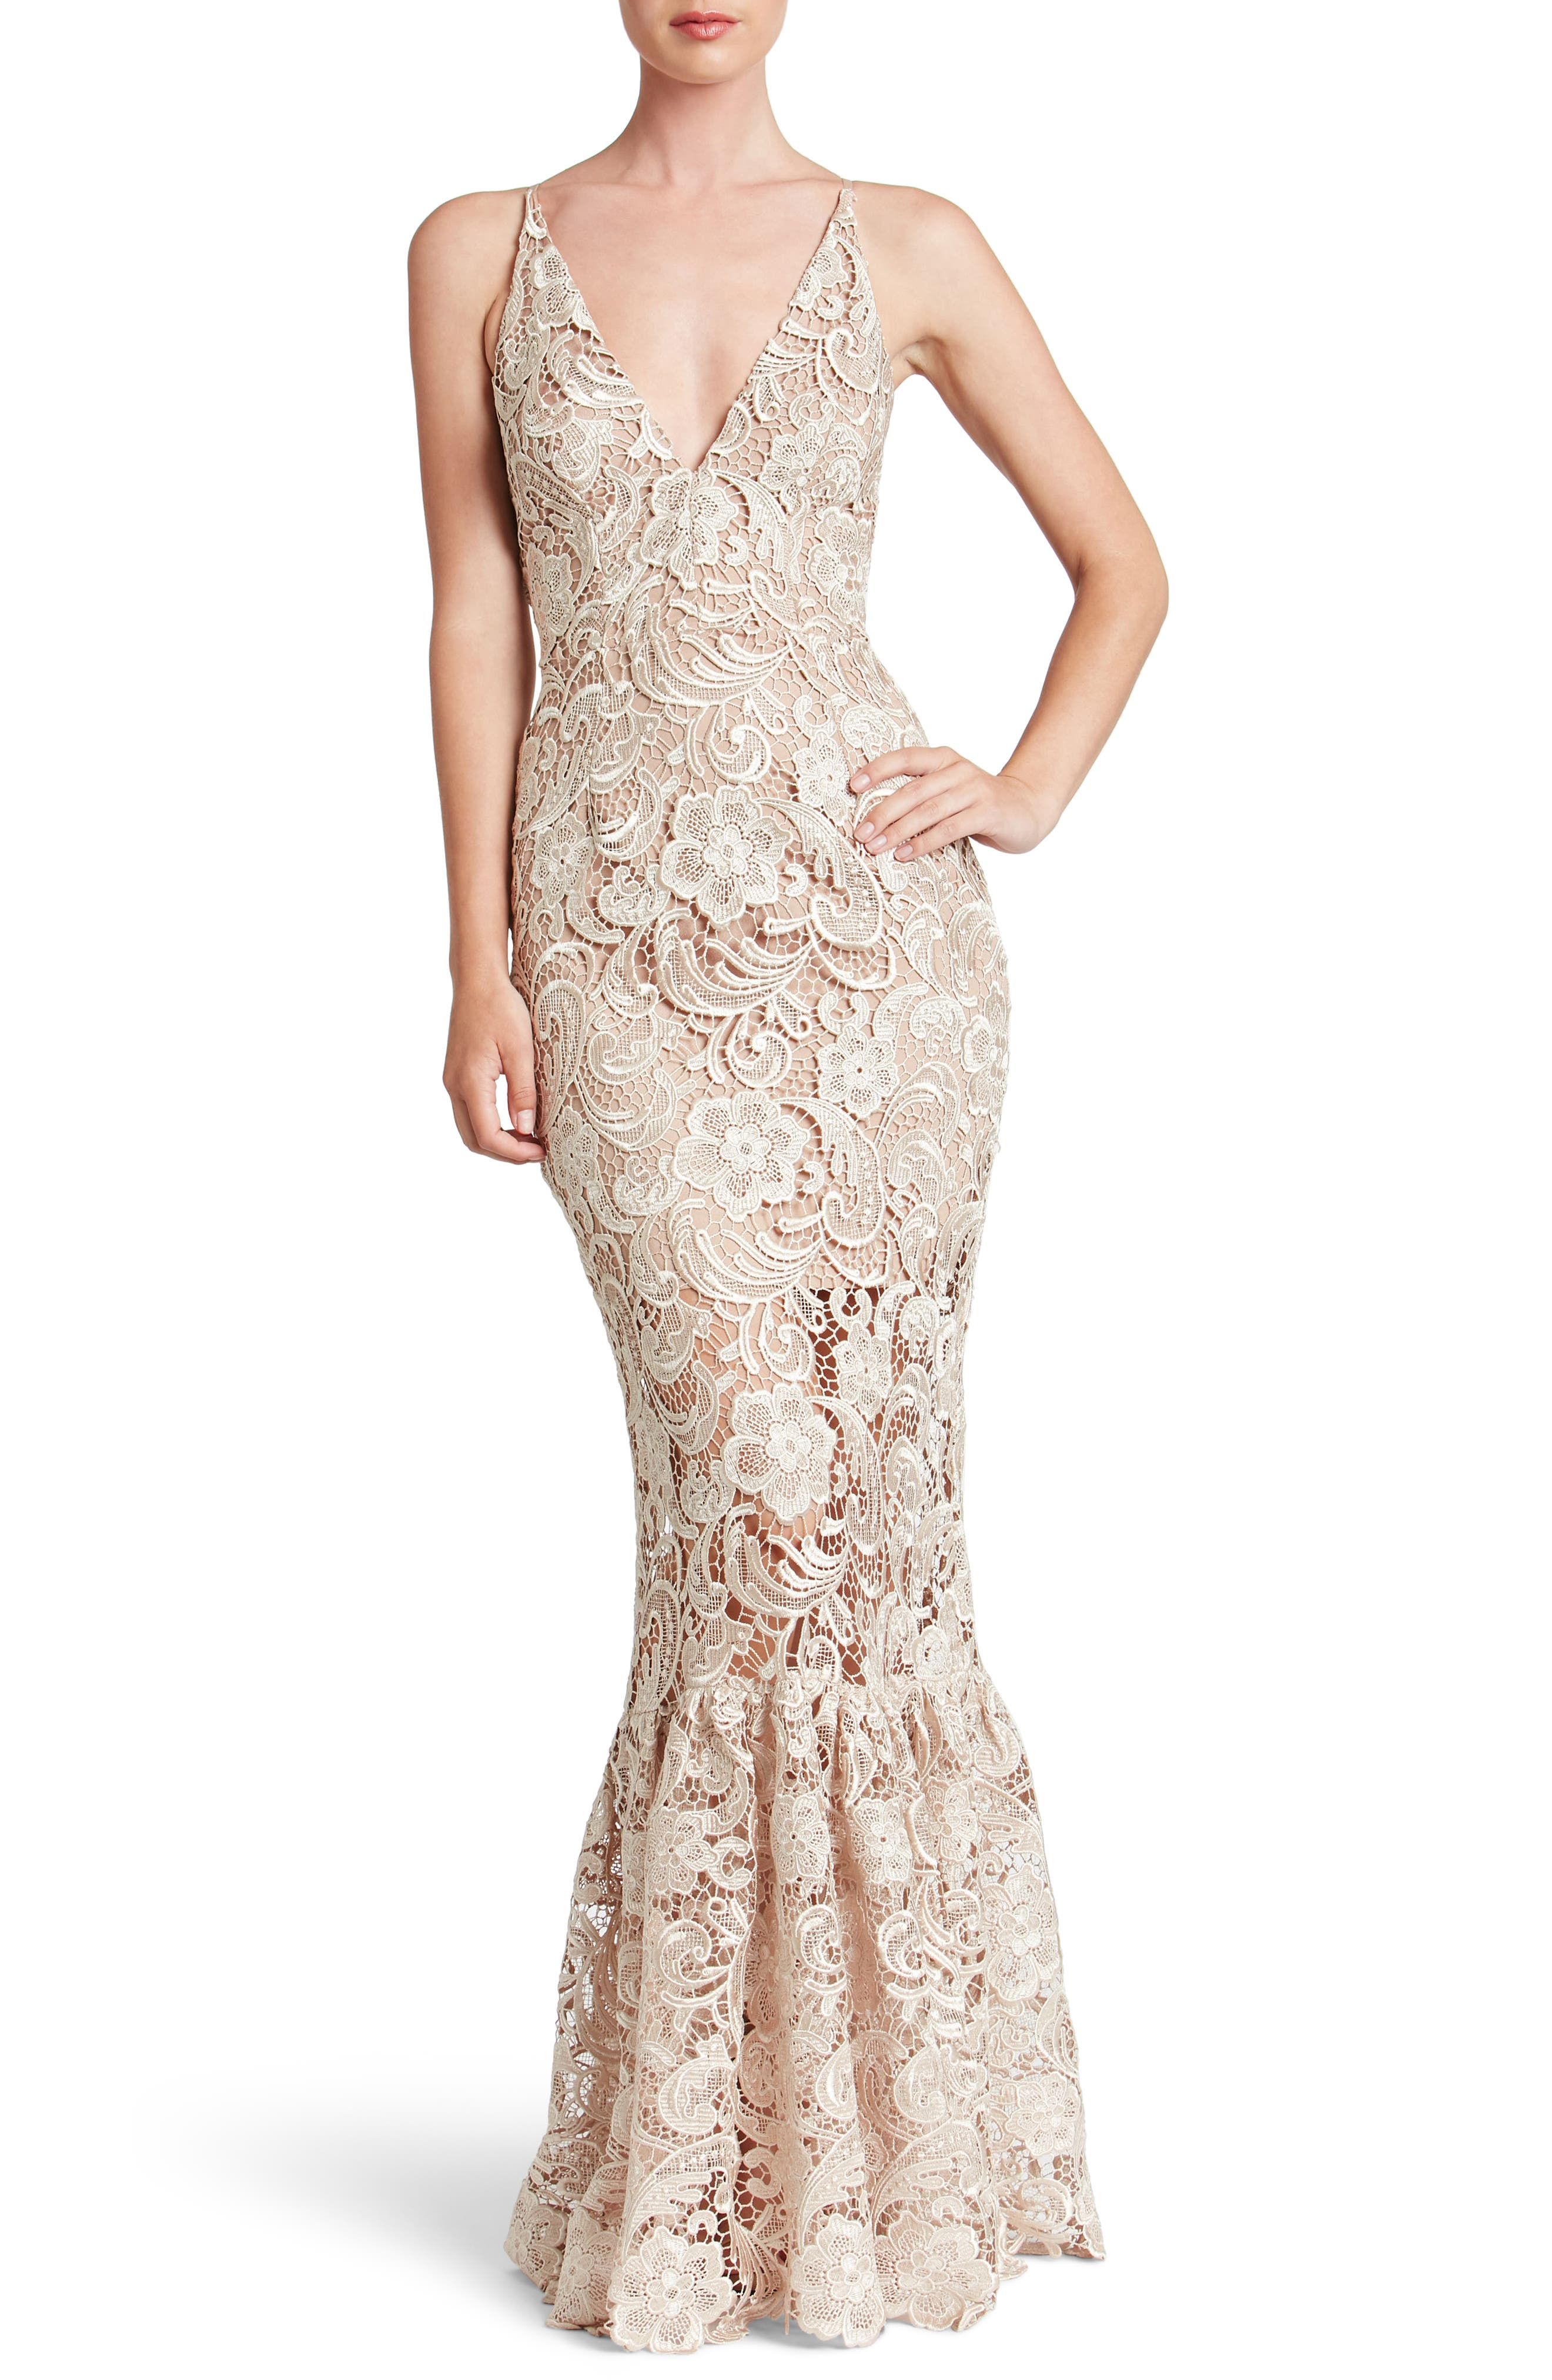 Alternate Image 1 Selected - Dress the Population Sophia Crochet Lace Mermaid Gown